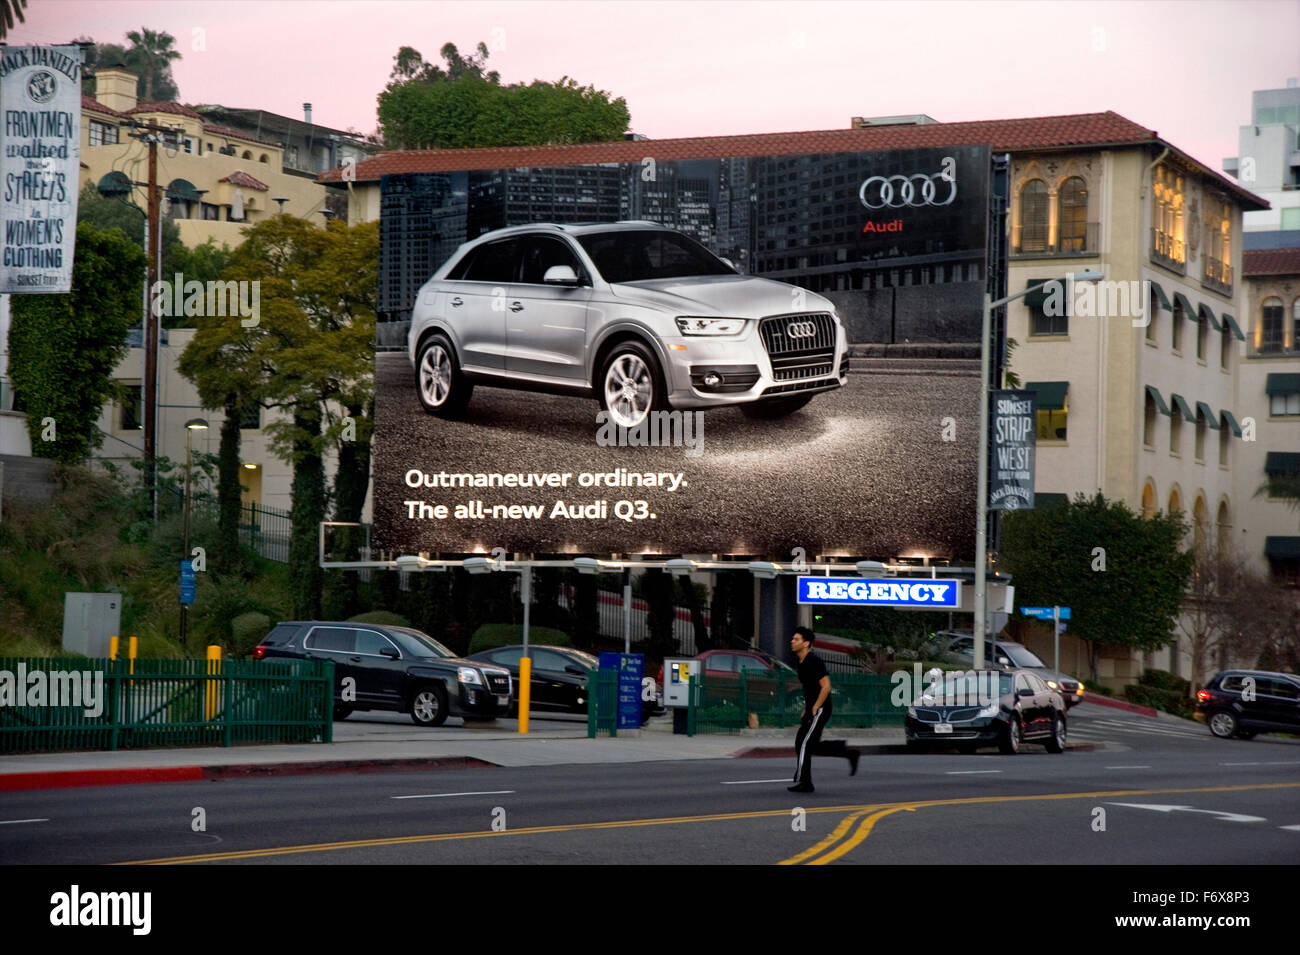 Audi Billboard on the Sunset Strip - Stock Image